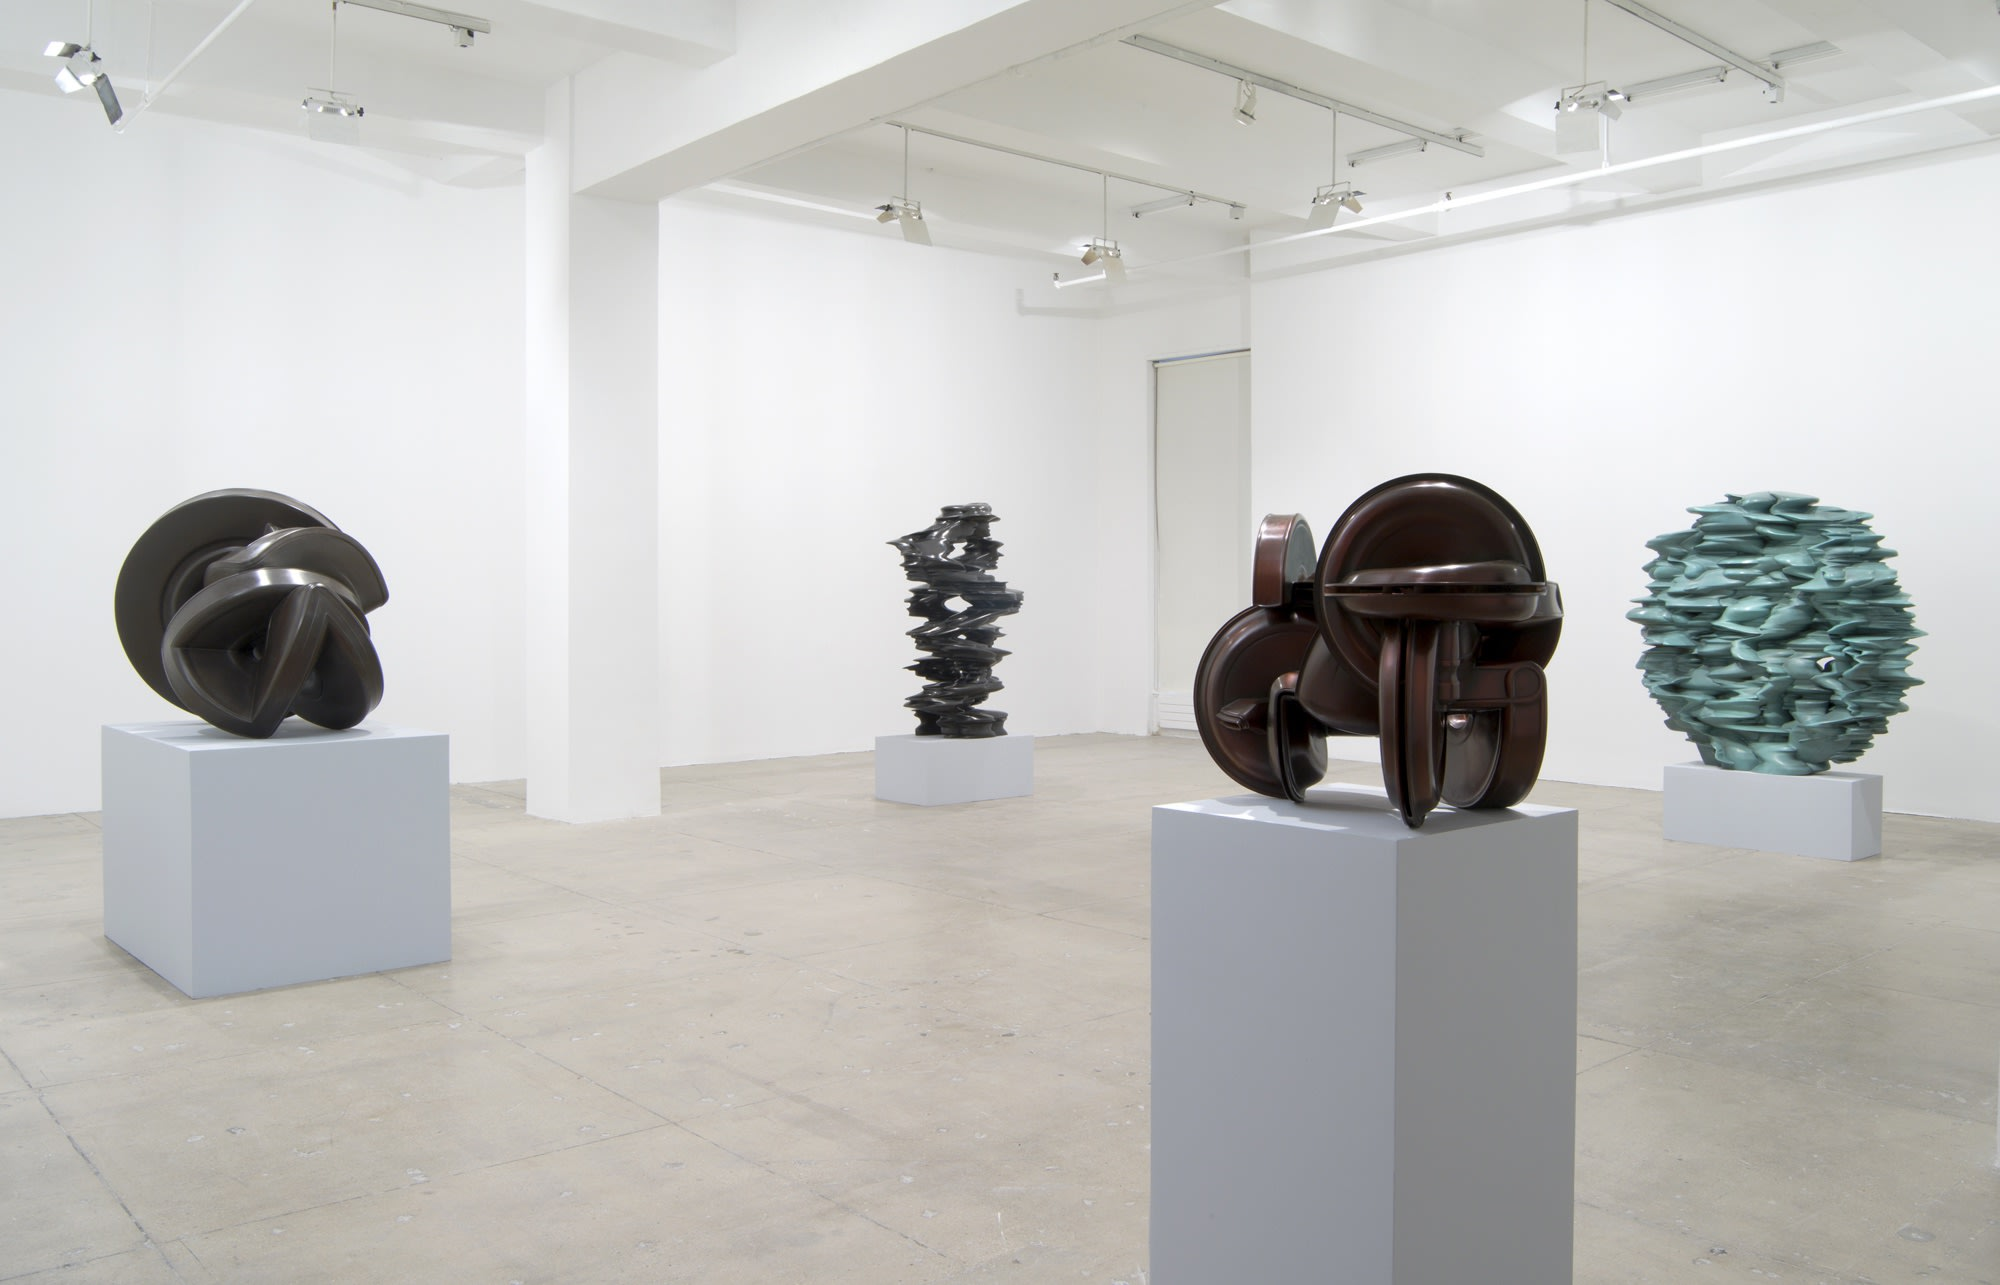 Four abstract sculptures sit on pedestals across a large white room; one on the right is light blue-green and the others are dark brown and grey.